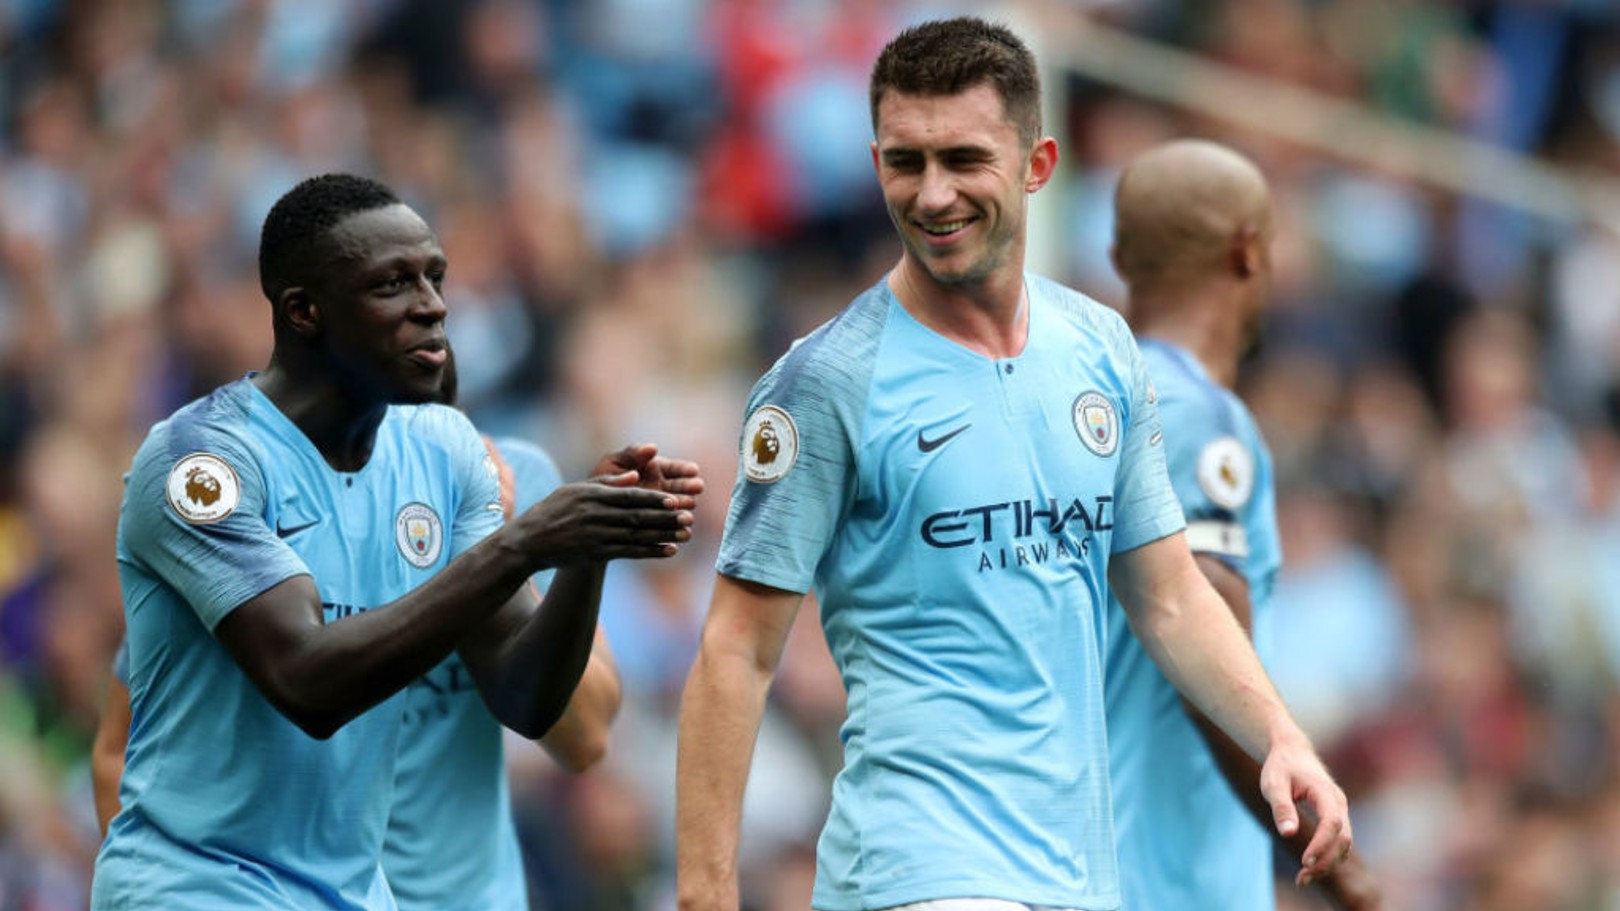 BLUE STEEL: Benjamin Mendy and Aymeric Laporte have played their part in City's sound defensive displays so far this season